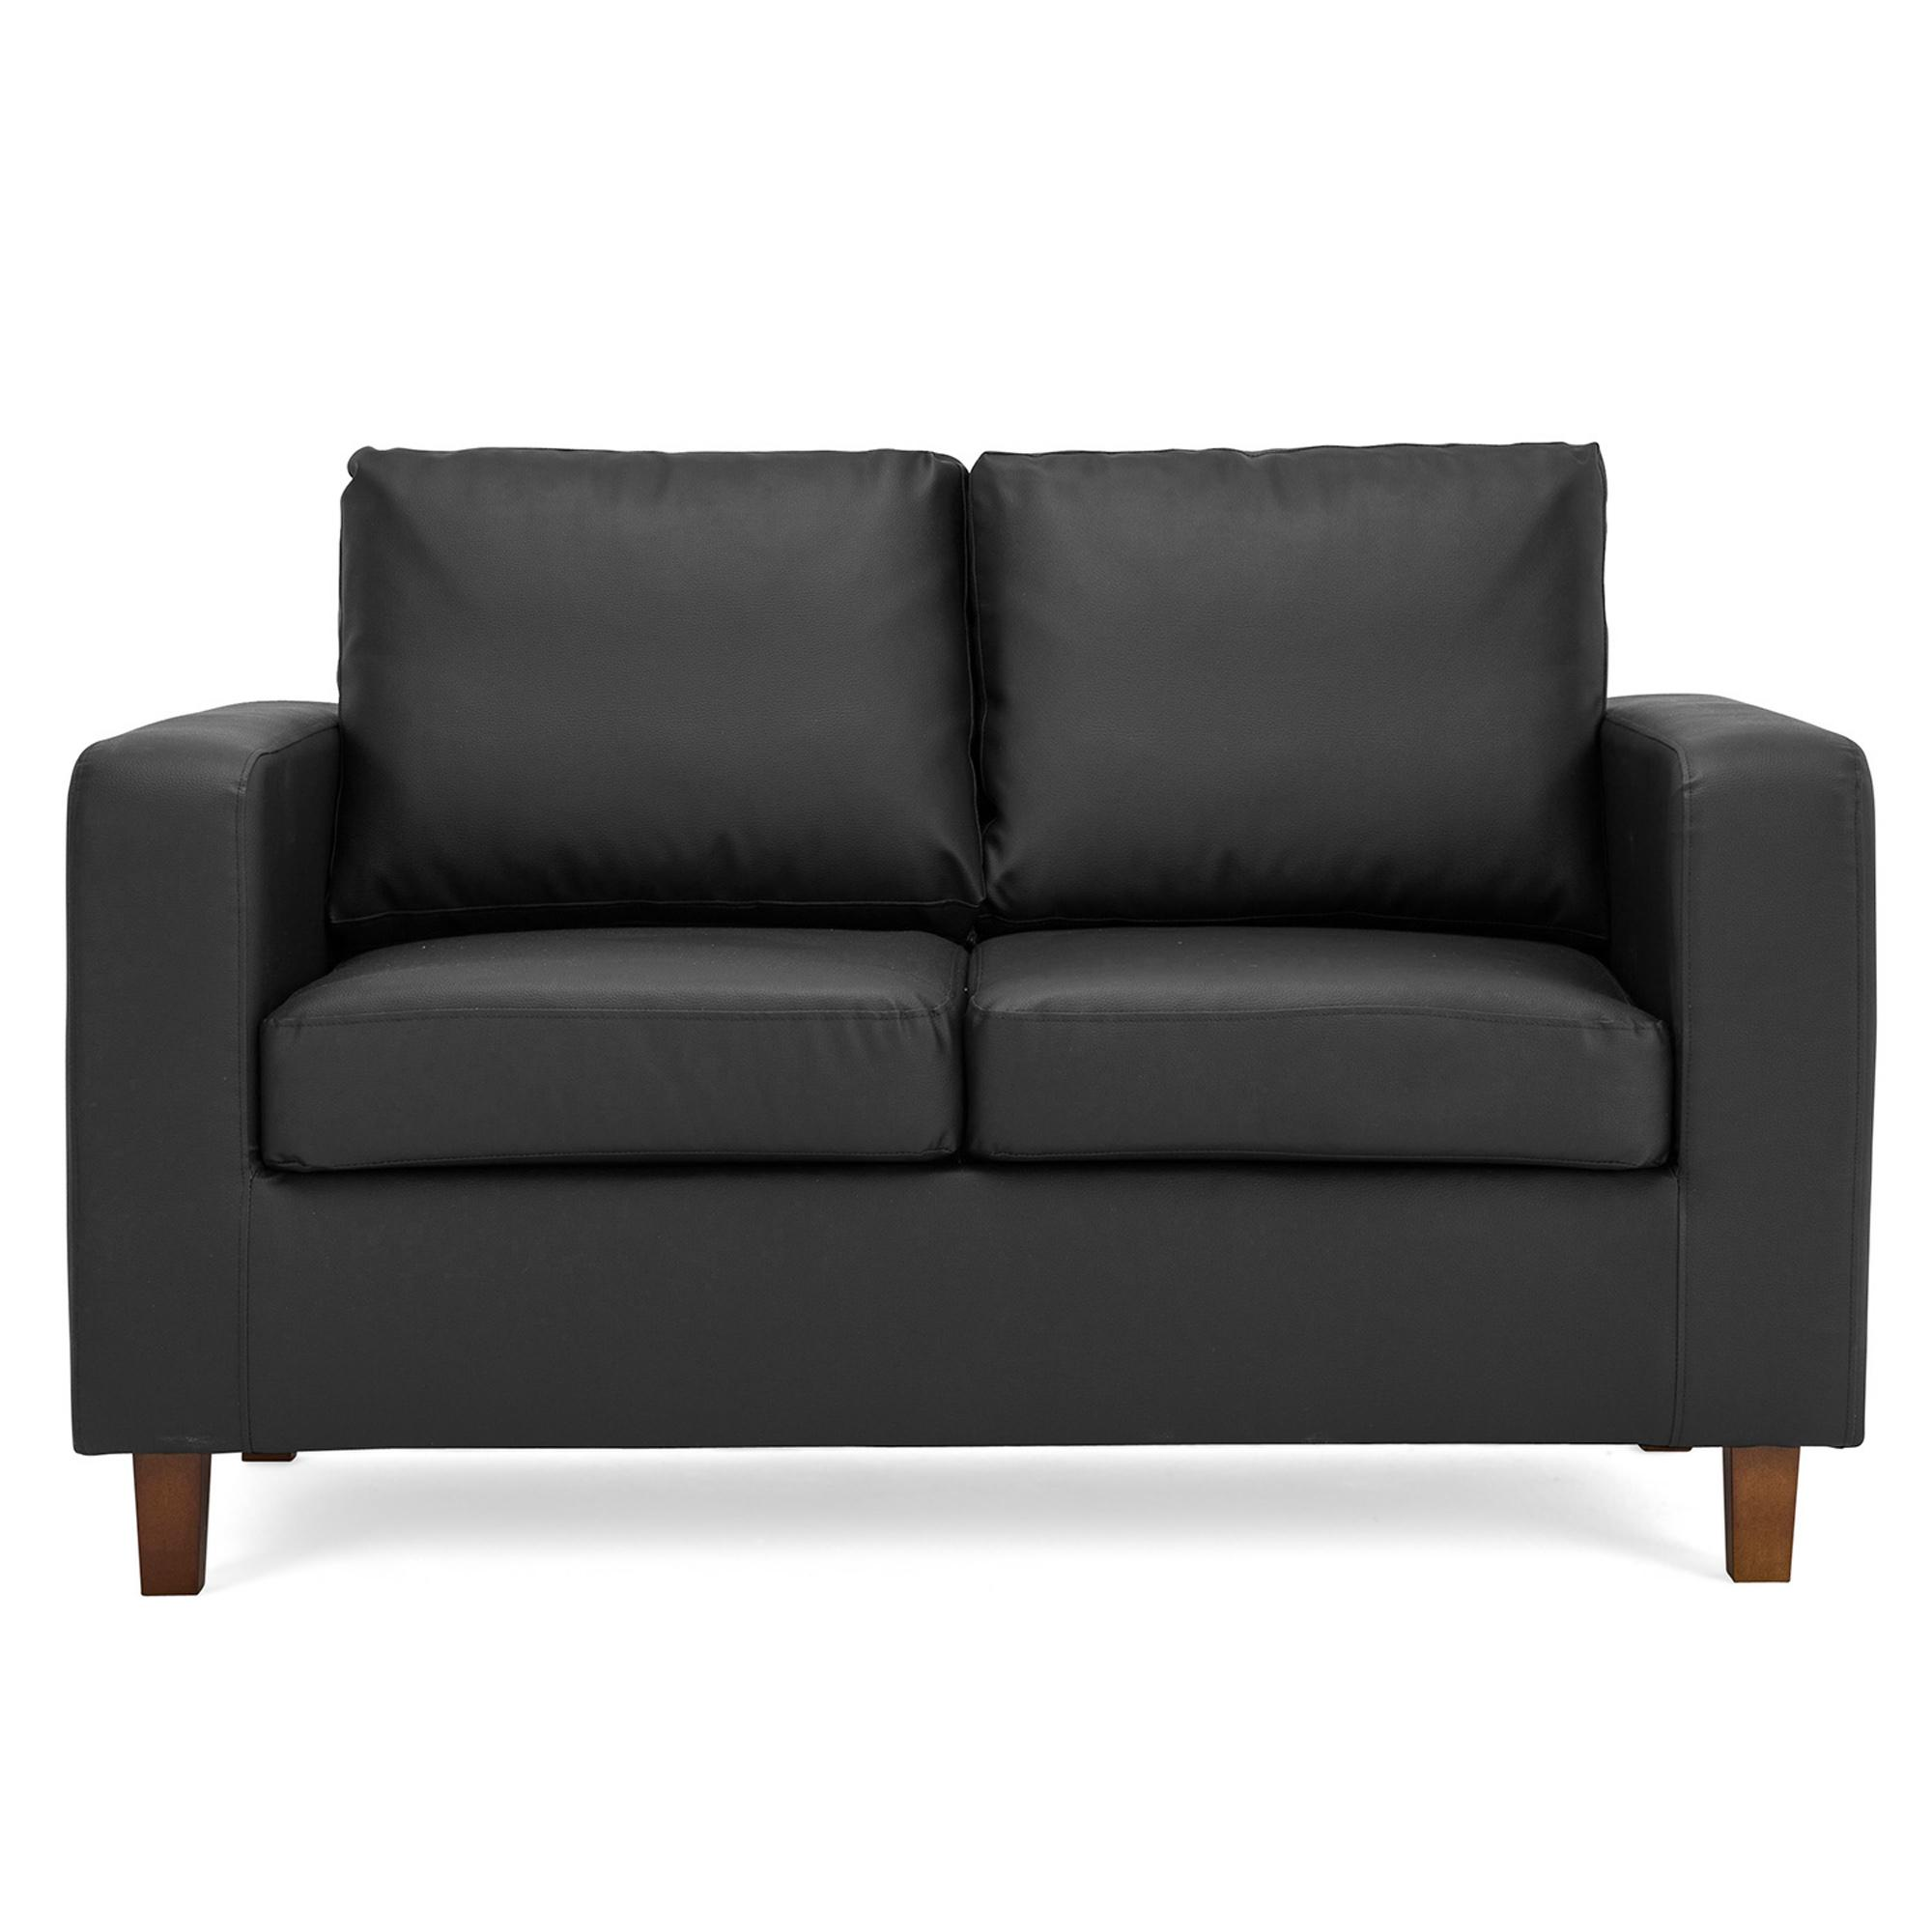 Max 2 Seater Faux Leather Sofa. loz_exclusively_online